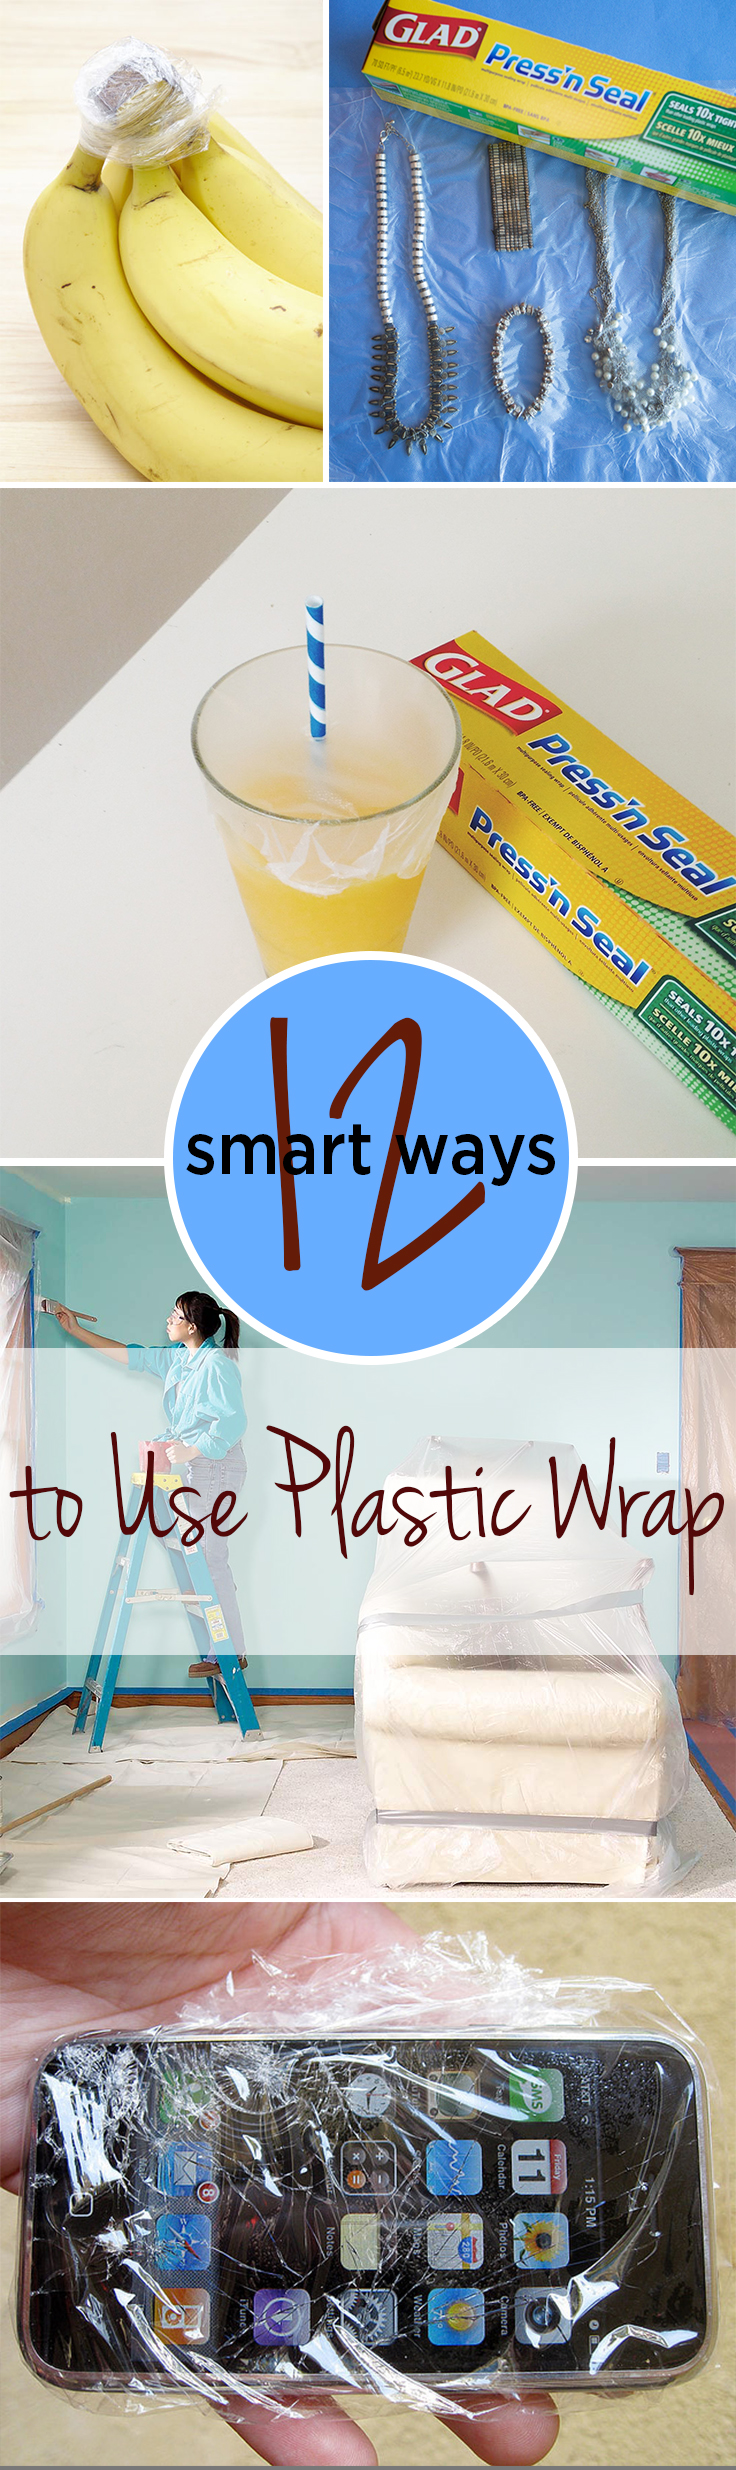 12 Smart Ways to Use Plastic Wrap